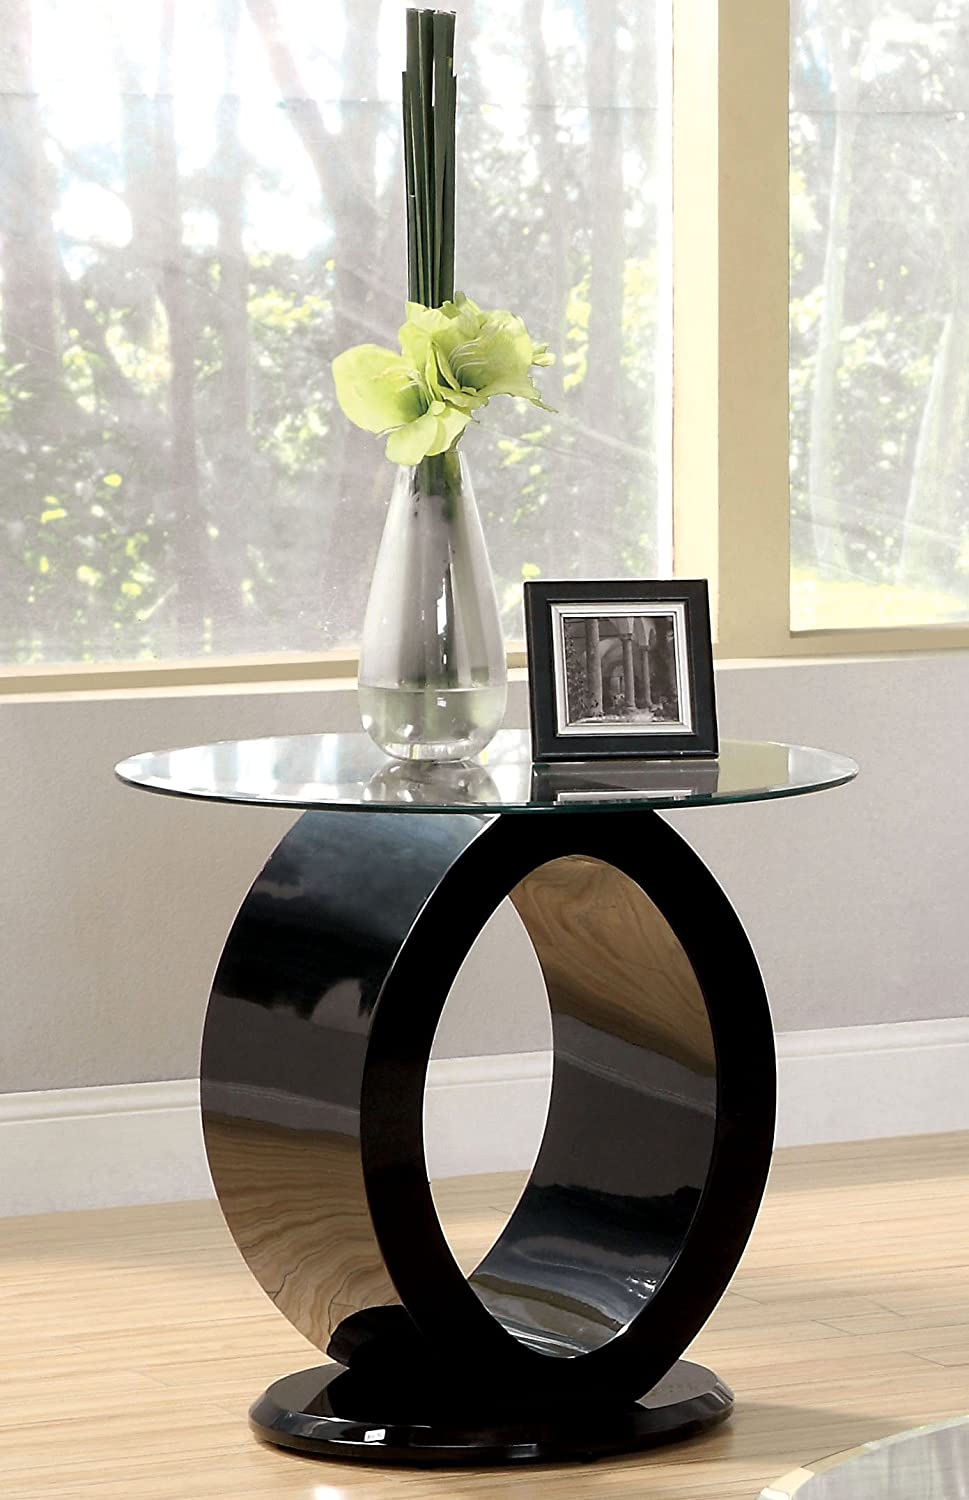 Furniture of America Modine Contemporary Glass Top End Table, Black